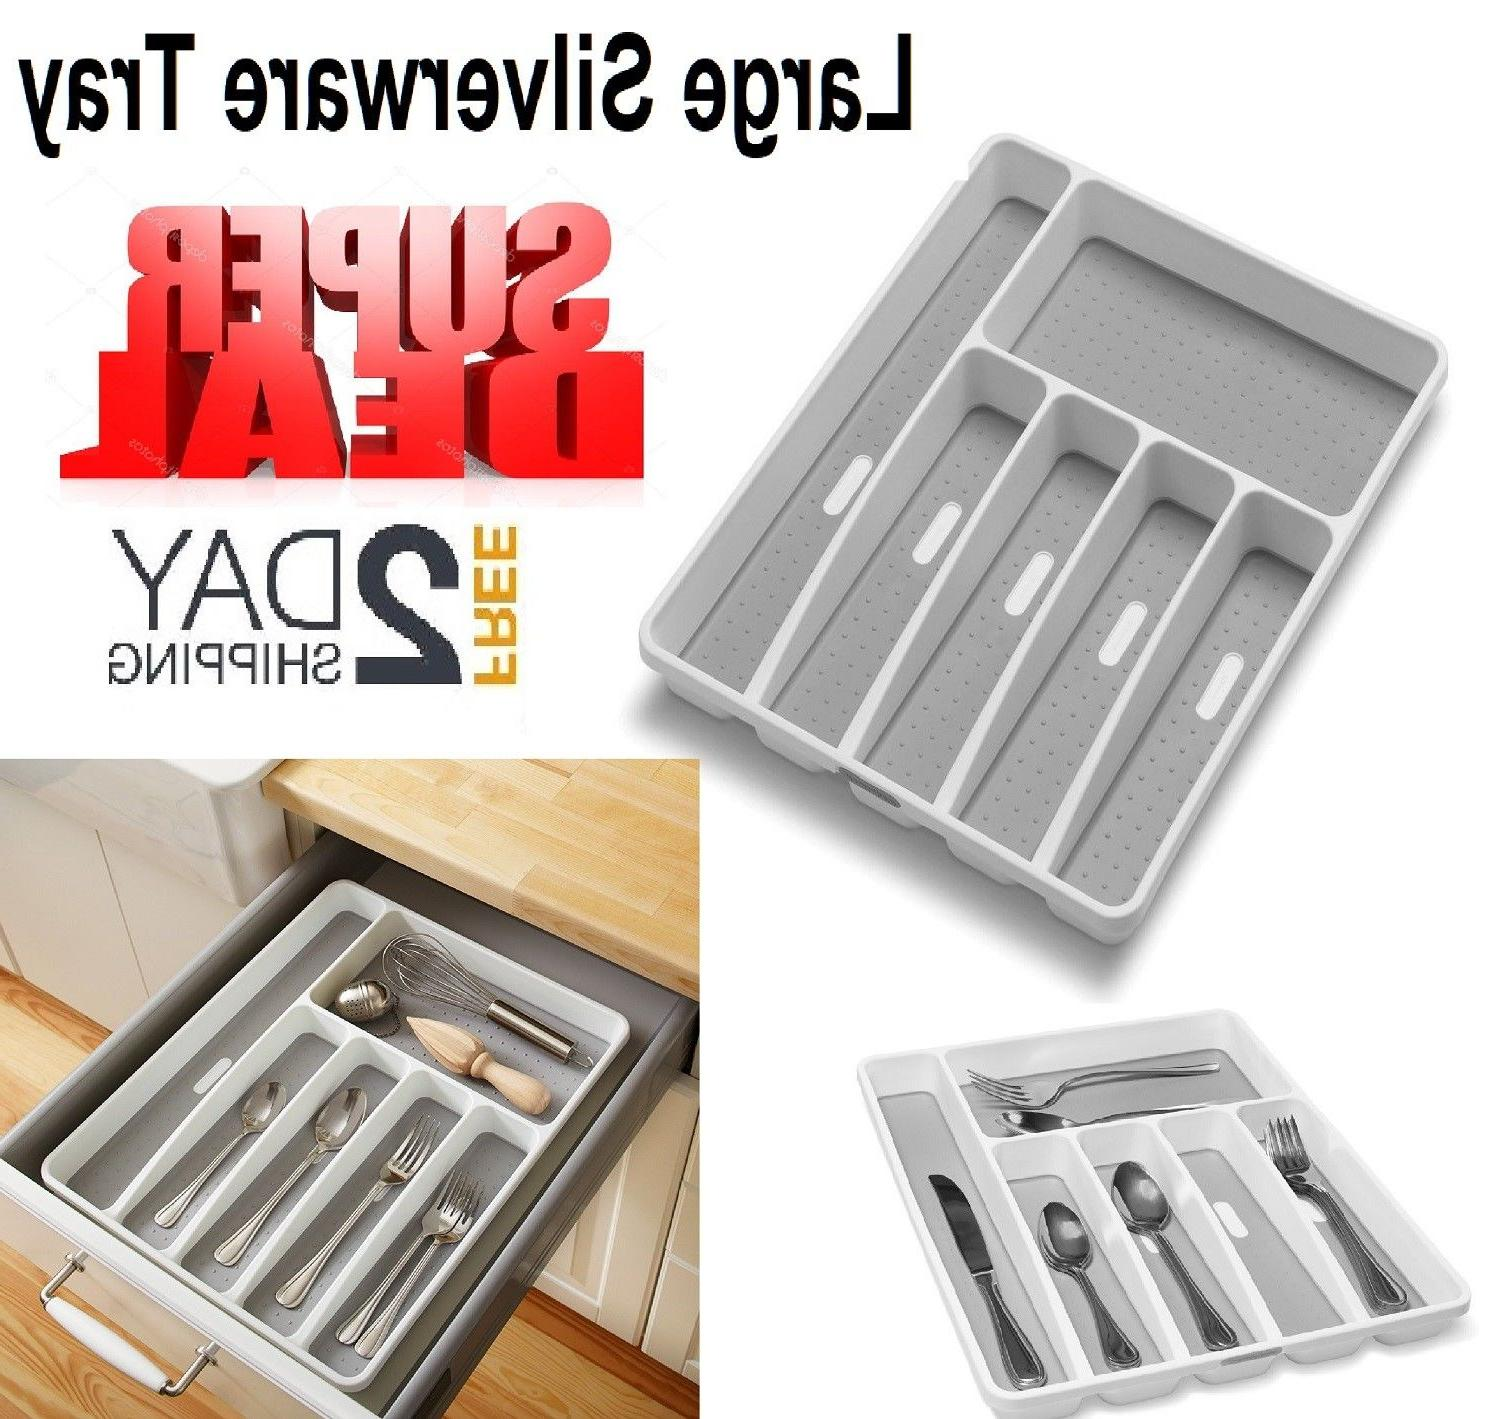 Silverware Drawer Organizer Tray Kitchen Storage Holder Flat